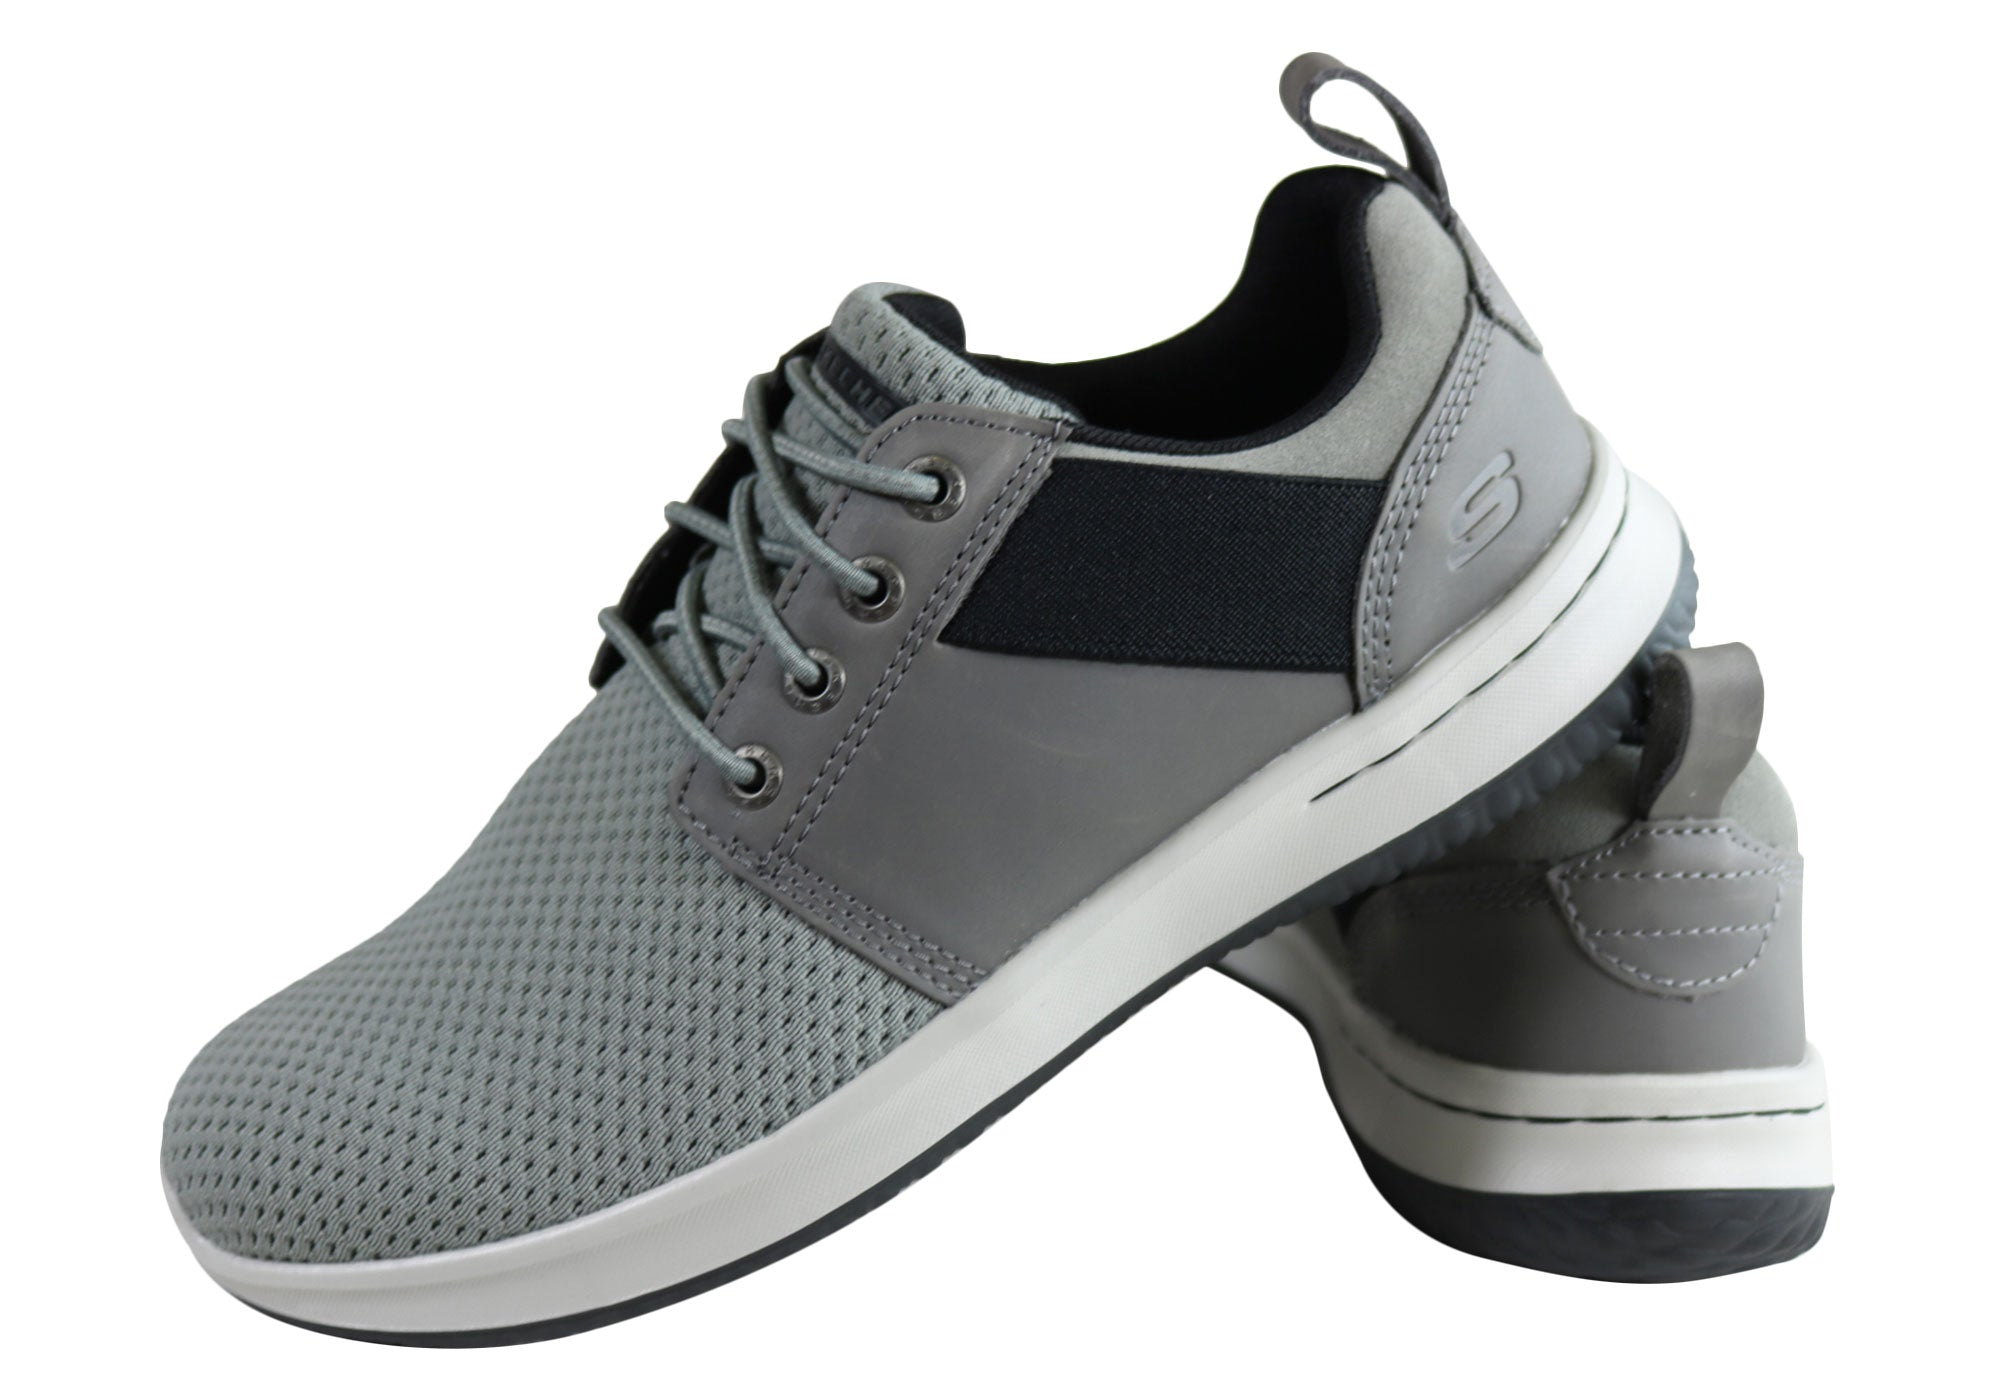 Skechers Mens Delson Brant Lace Up